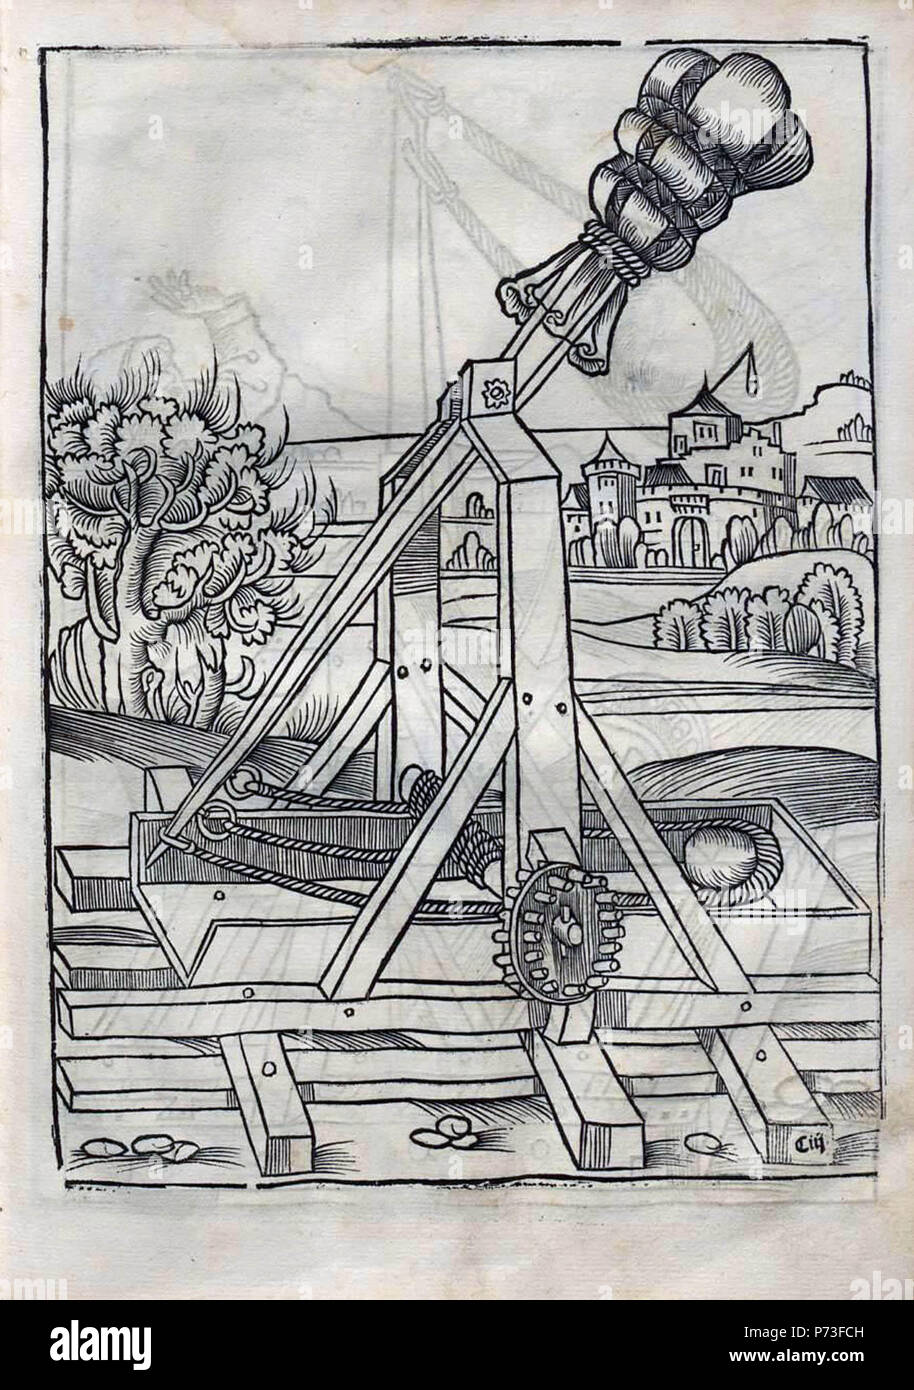 medium resolution of 16th century depiction of a counterweight trebuchet